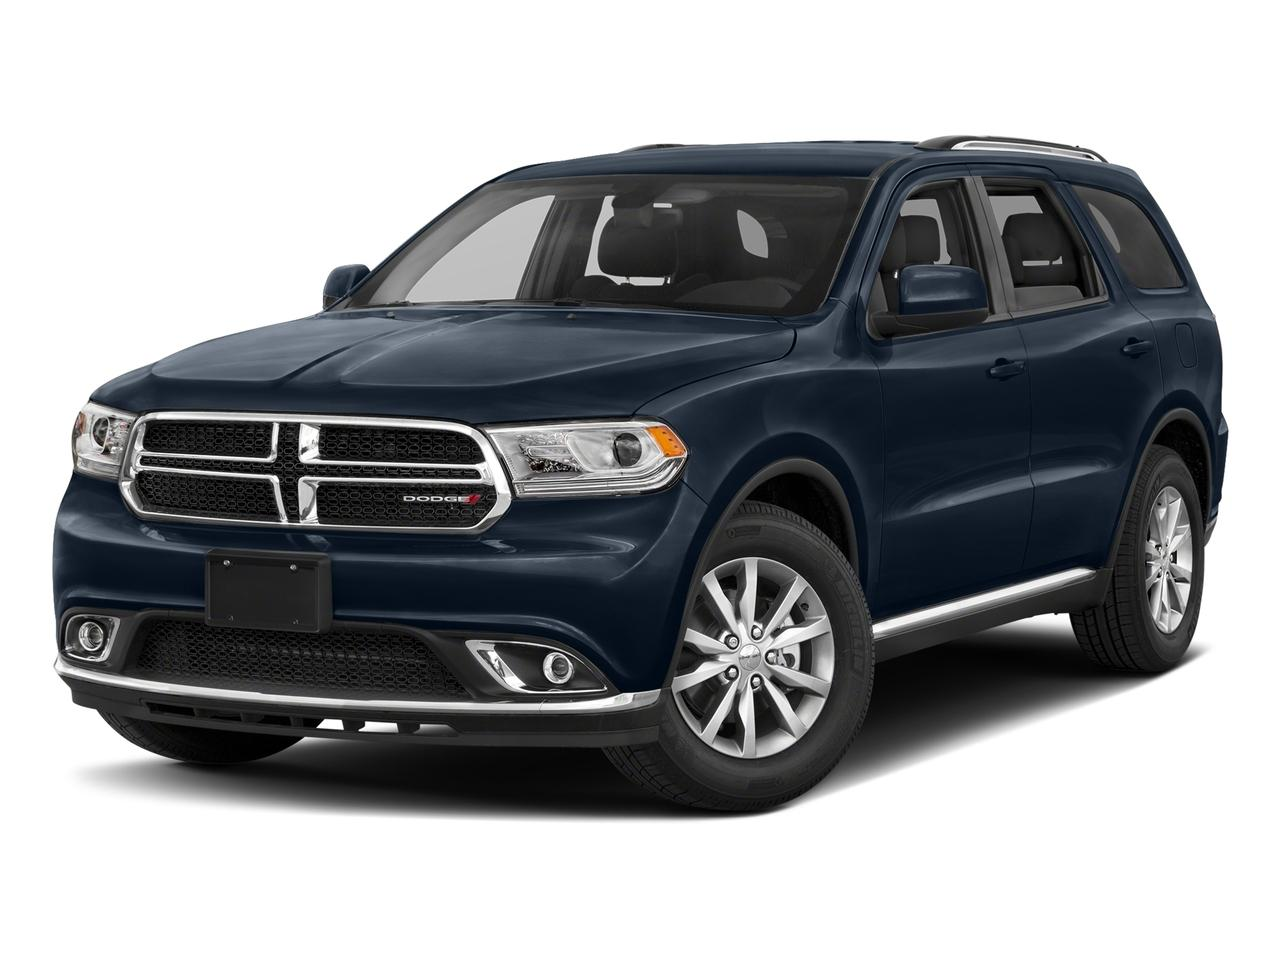 2017 Dodge Durango Vehicle Photo in Medina, OH 44256